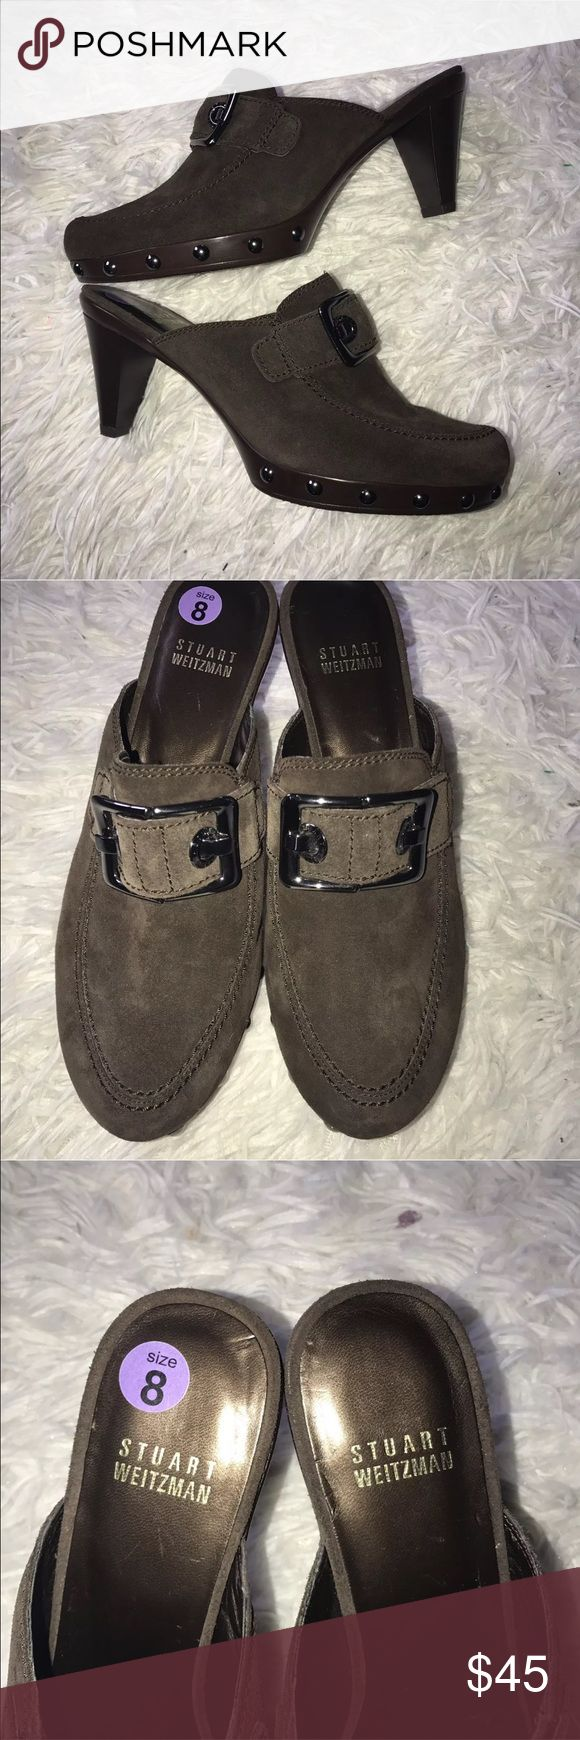 Stuart Weitzman women's 8 brown studded clogs Stuart Weitzman  Women's size 8  Brown mules/clogs  Open back  Studded front  Great condition. Stuart Weitzman Shoes Mules & Clogs